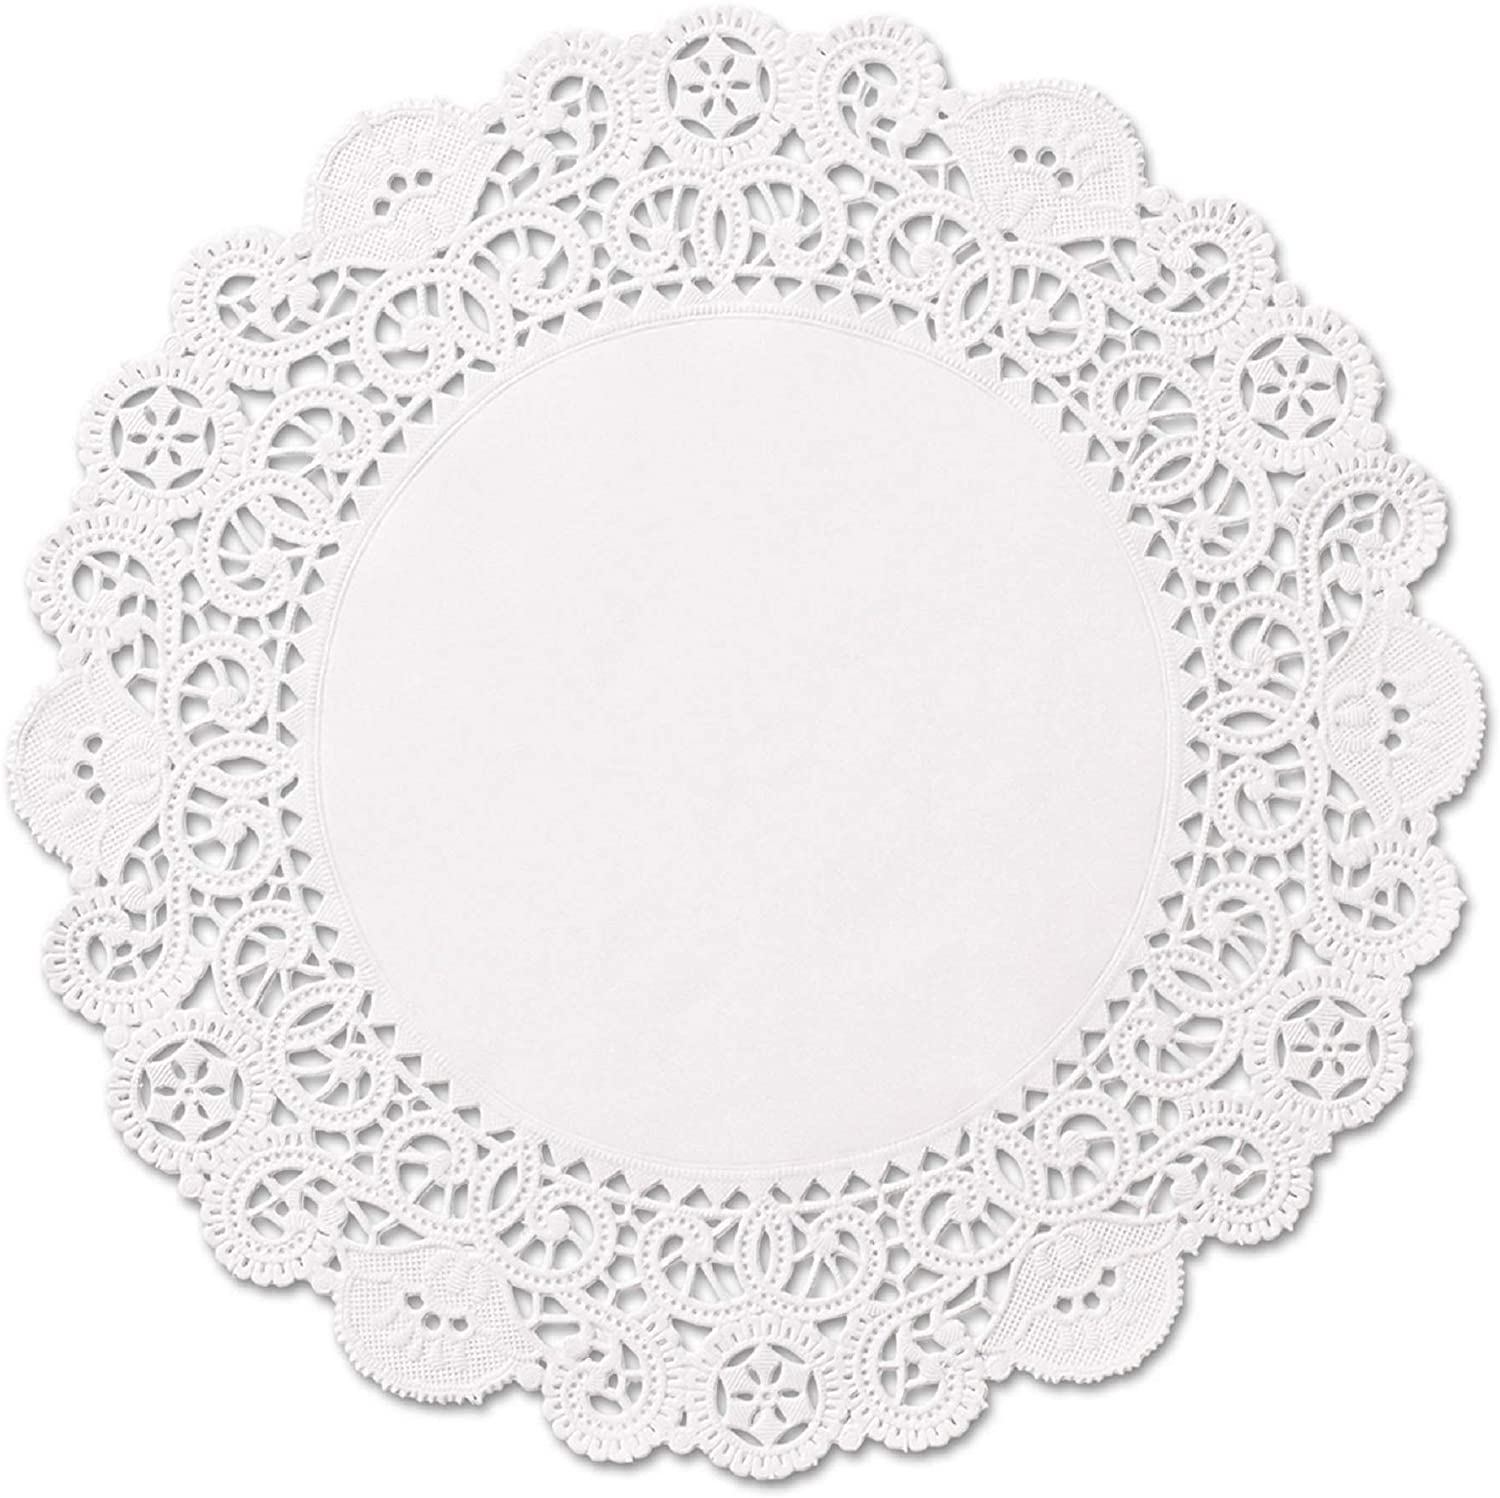 Round Inexpensive 8 Max 44% OFF inch Paper Lace Table Ta Doilies – White Decorative